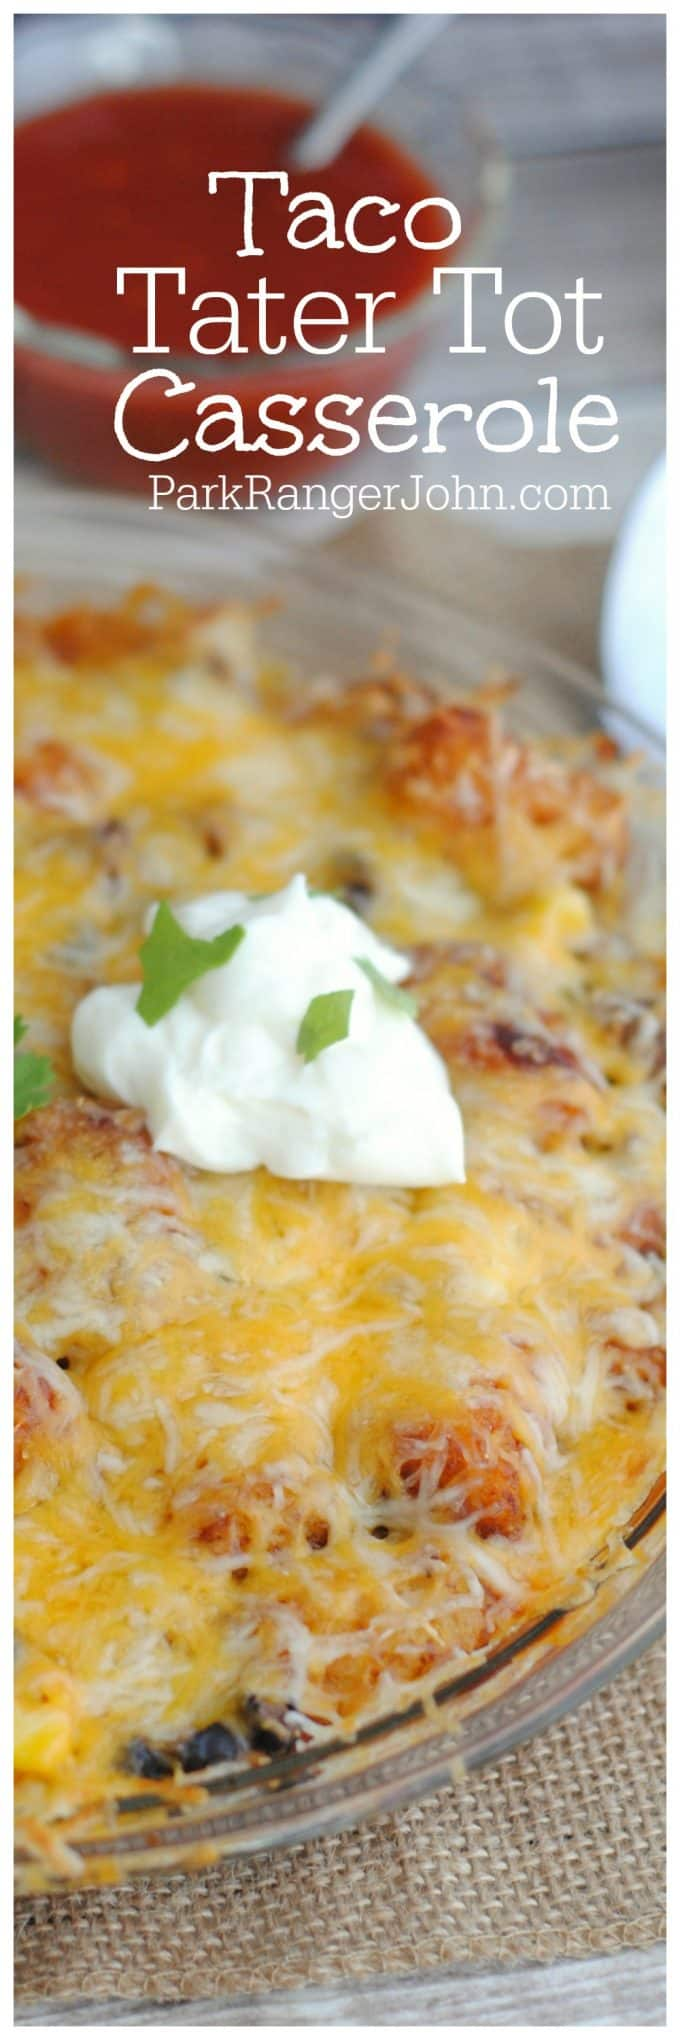 Easy cheesy Taco Tater Tot Casserole Recipe with ground beef.  Easy, Simple comfort food perfect for family dinners.